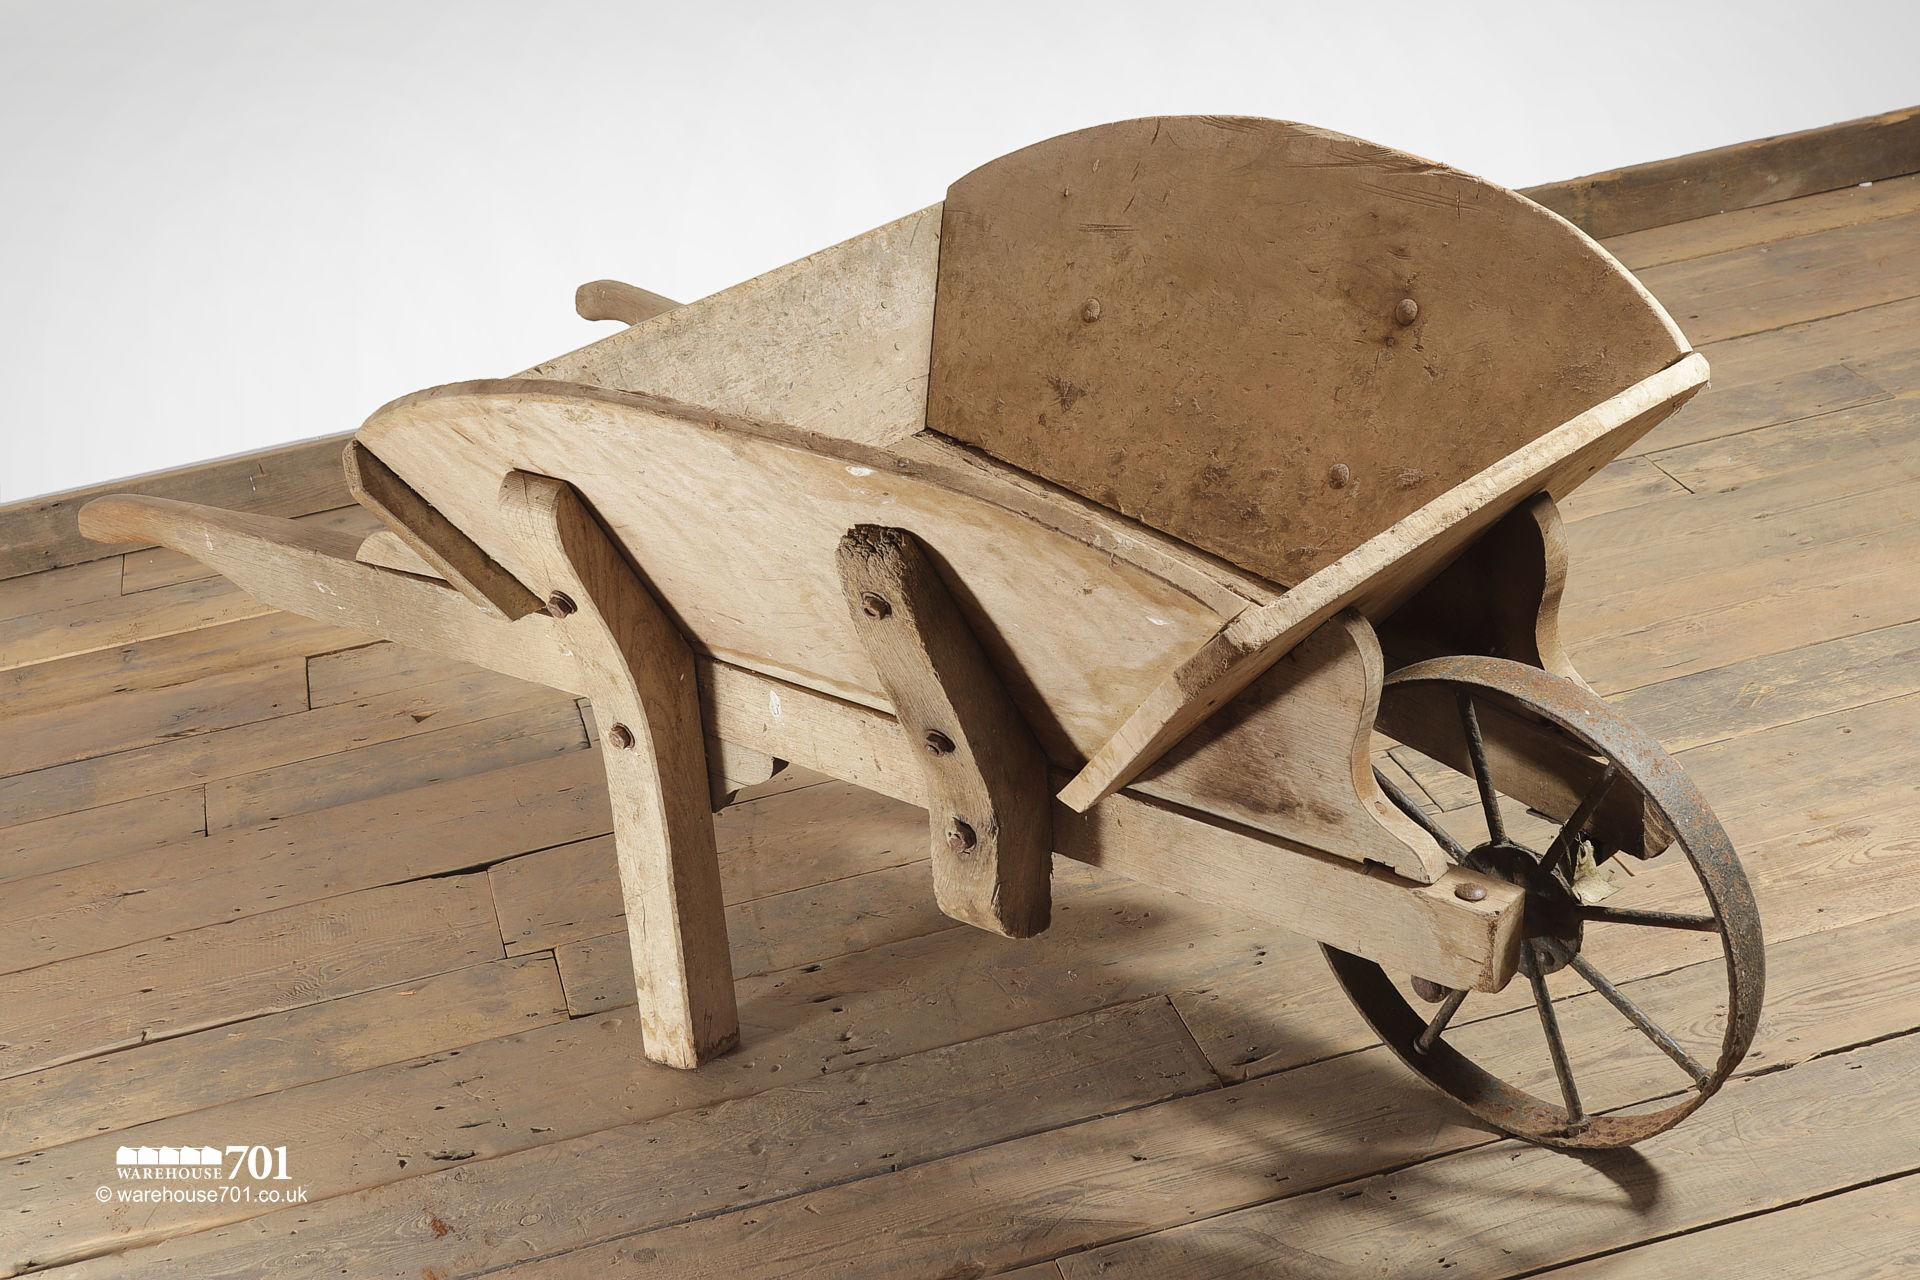 Salvaged Old-Fashioned Wood Wheelbarrow with Iron Wheel #2